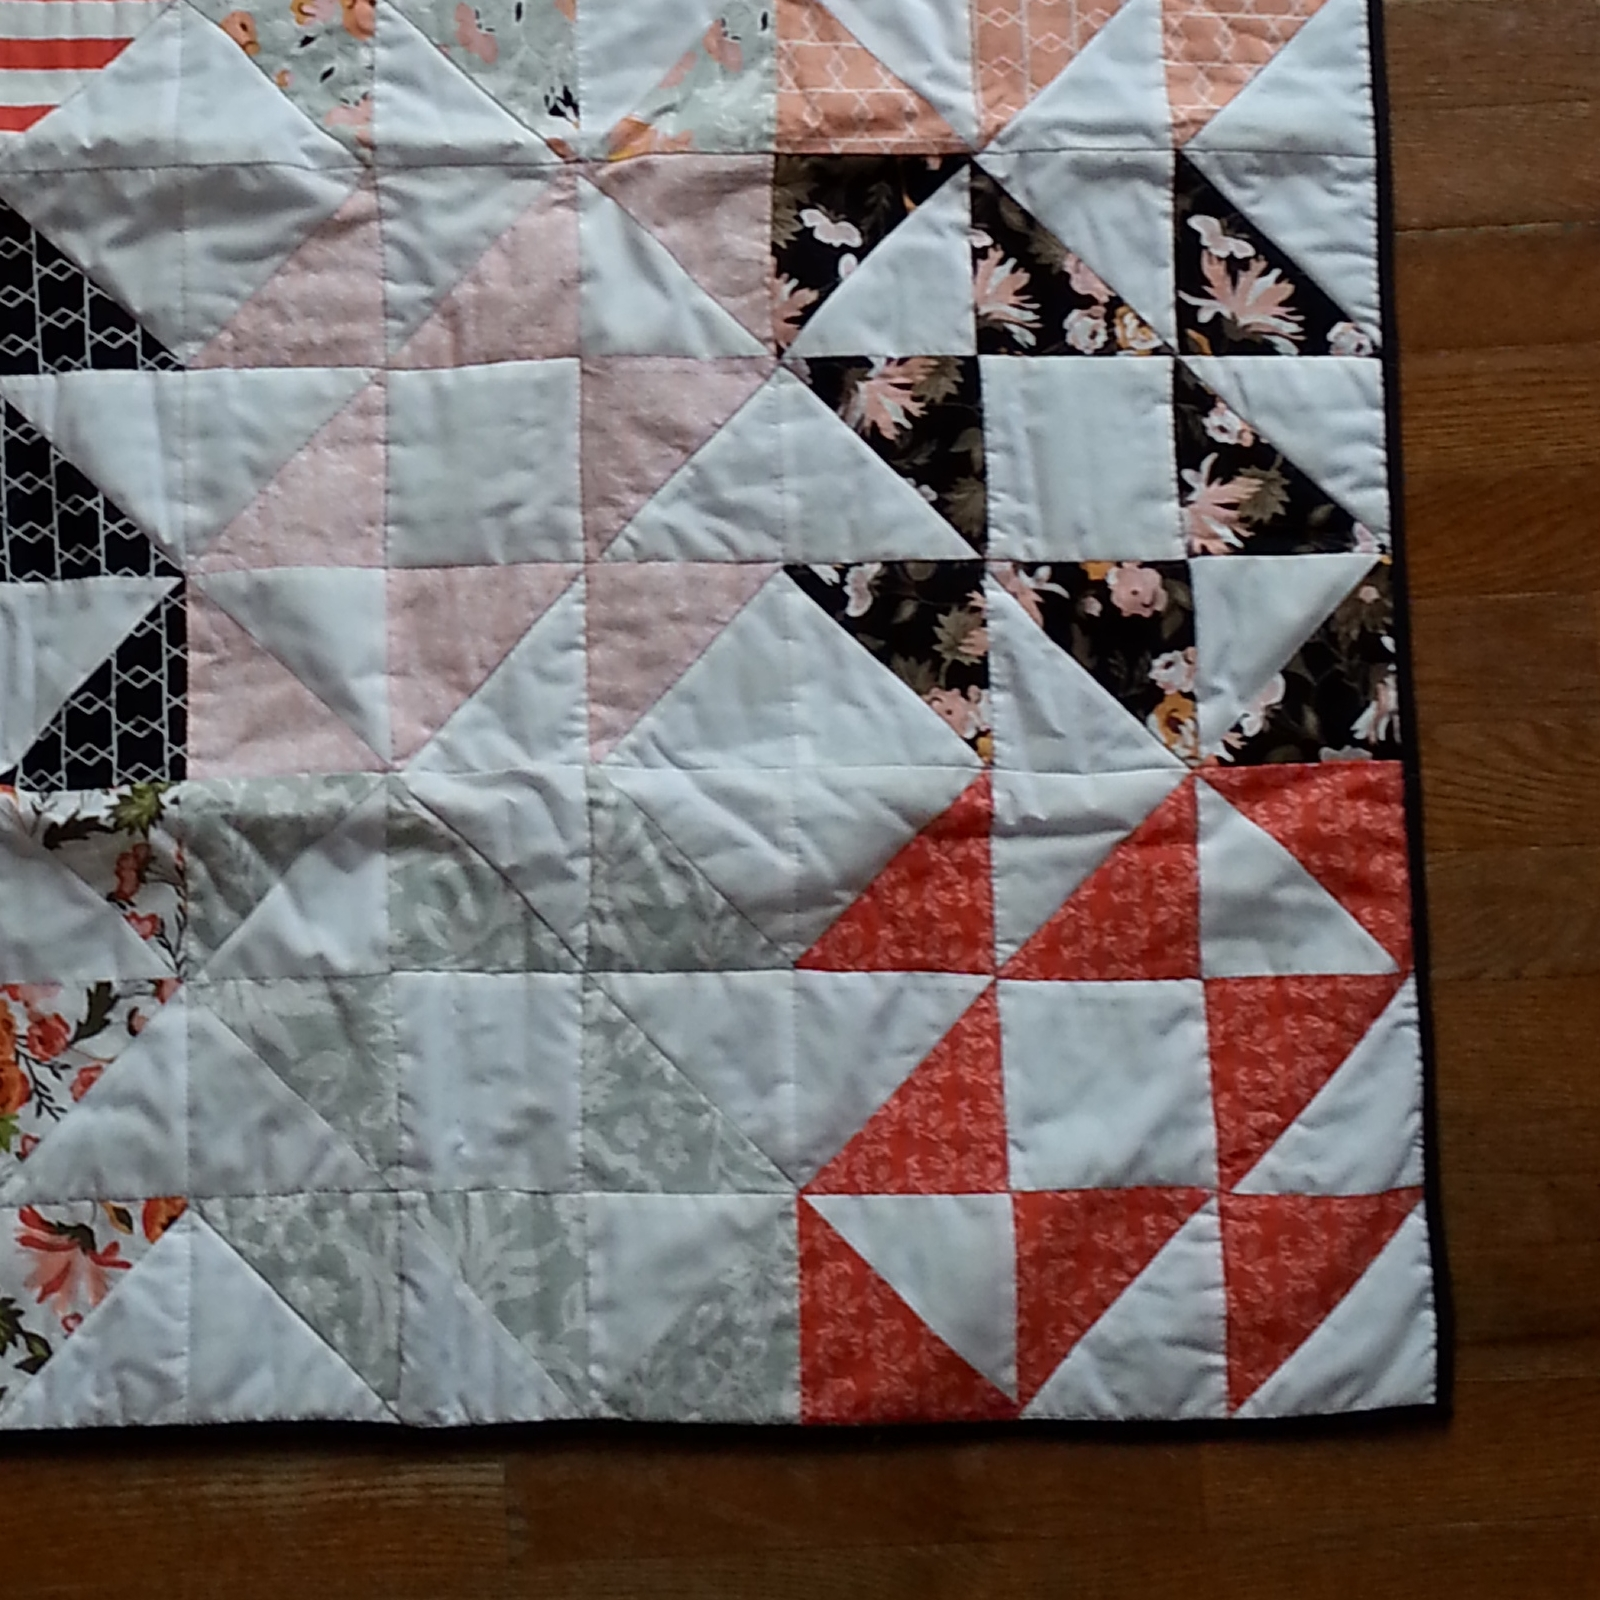 Ms. L's Baby Quilt - Squash Blossom Quilt